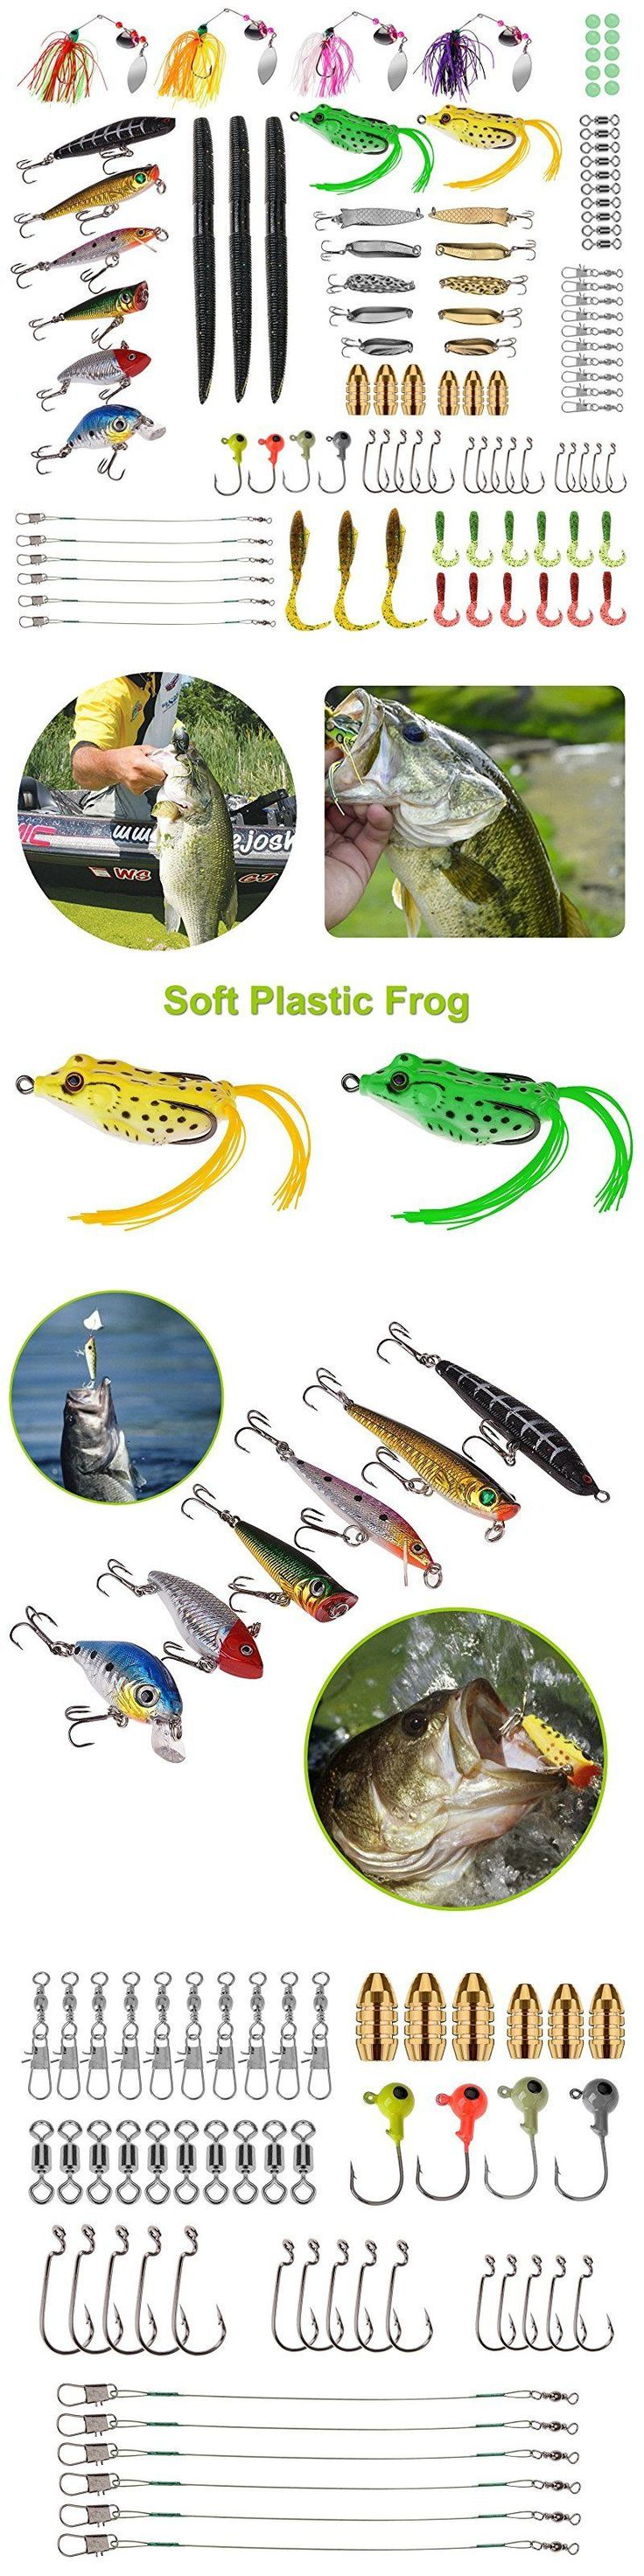 Crankbaits 7300: Fishing Lures Baits Tackle, Best Bass Fishing Lures Including Crankbaits, Spinne -> BUY IT NOW ONLY: $34.24 on eBay!